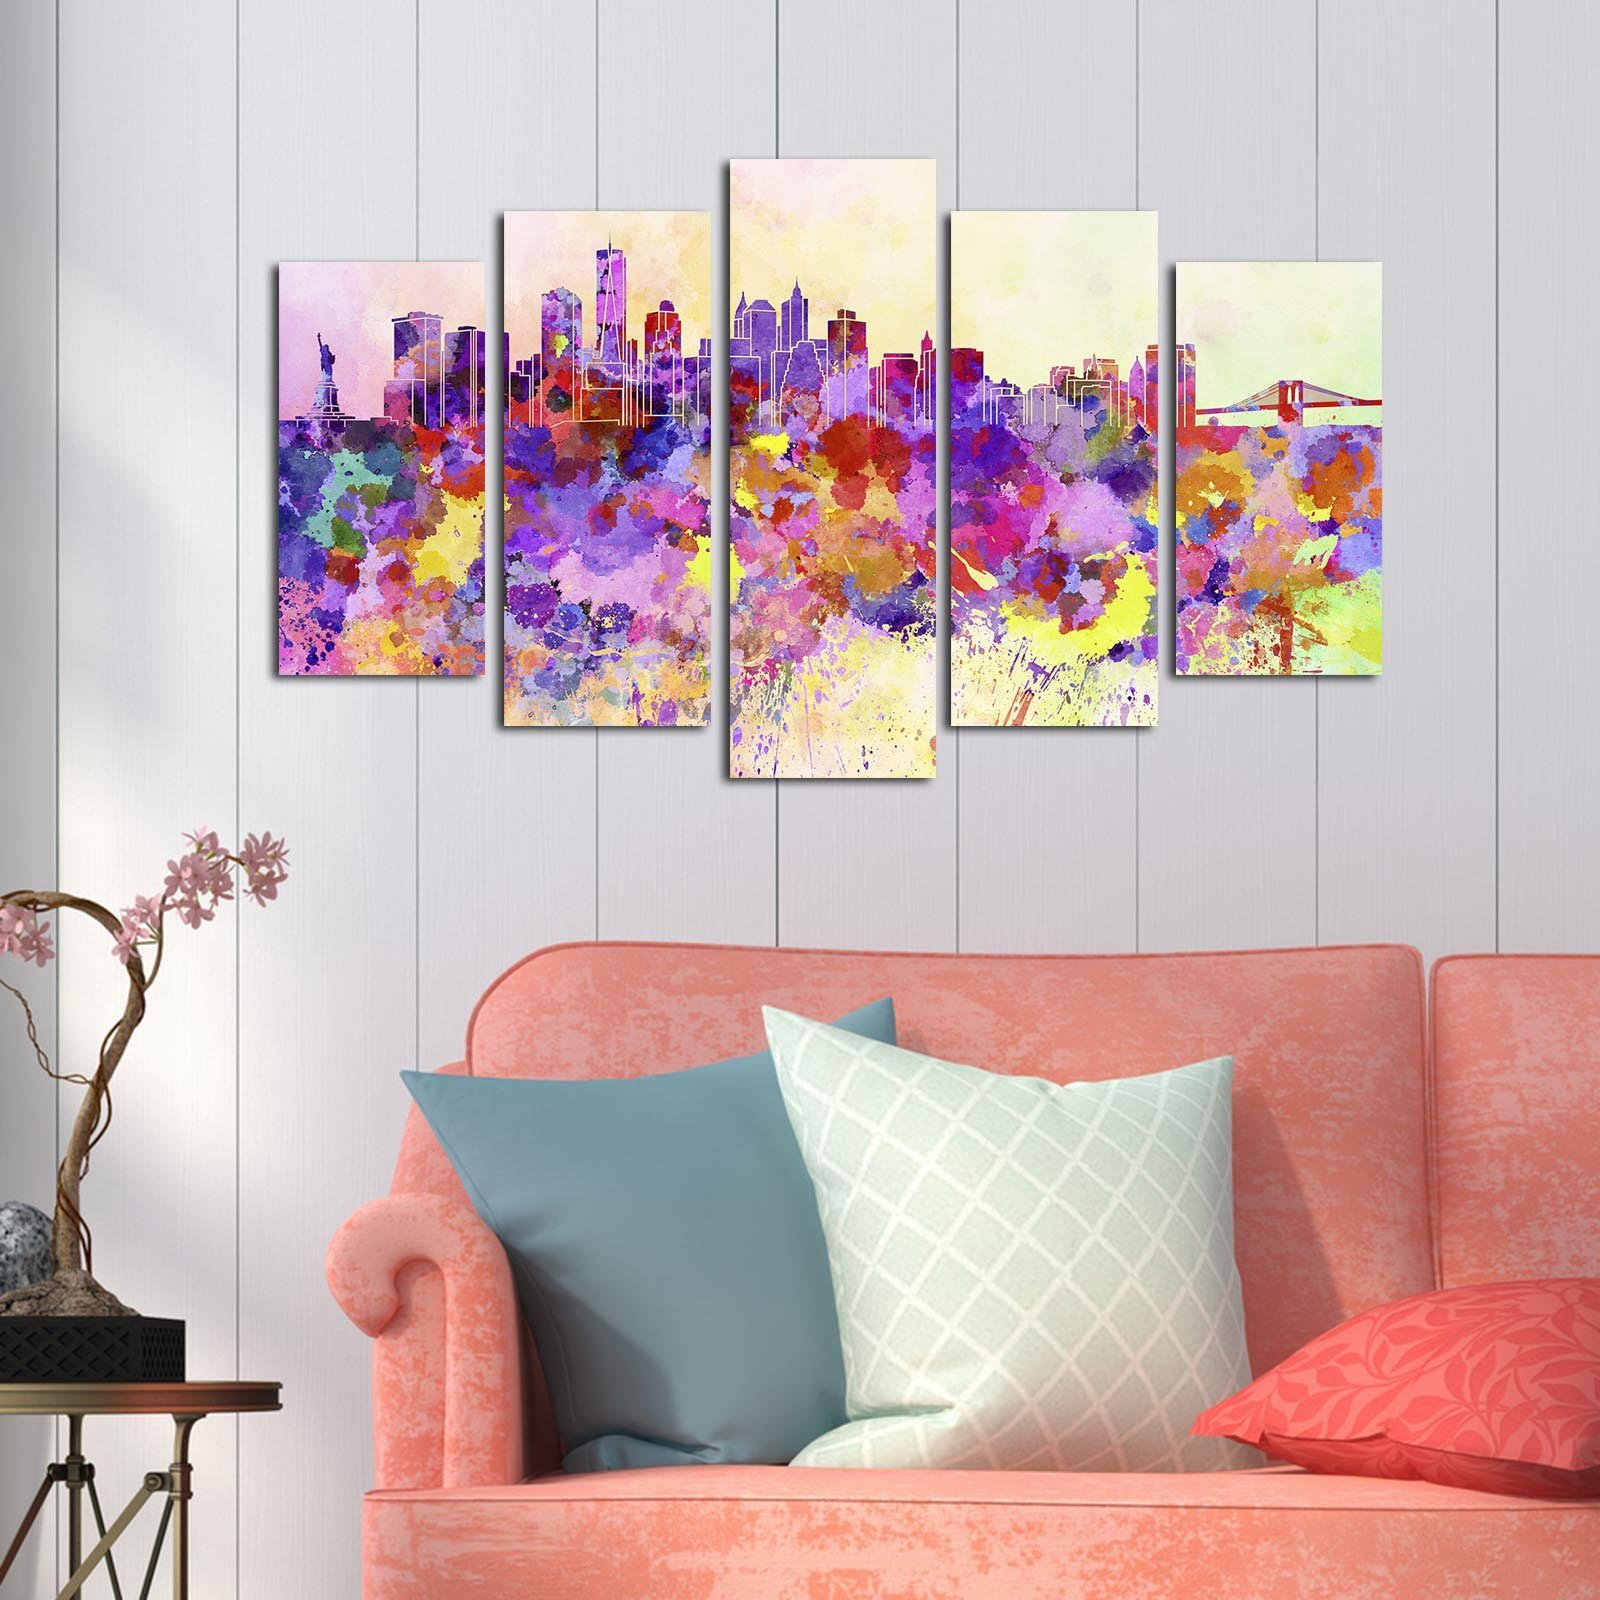 LaModaHome Decorative 100% MDF Wall Art 5 Panels (43'' x 24'' Total) Ready to Hang Painting Colourful Abscract City America Buildings Splash